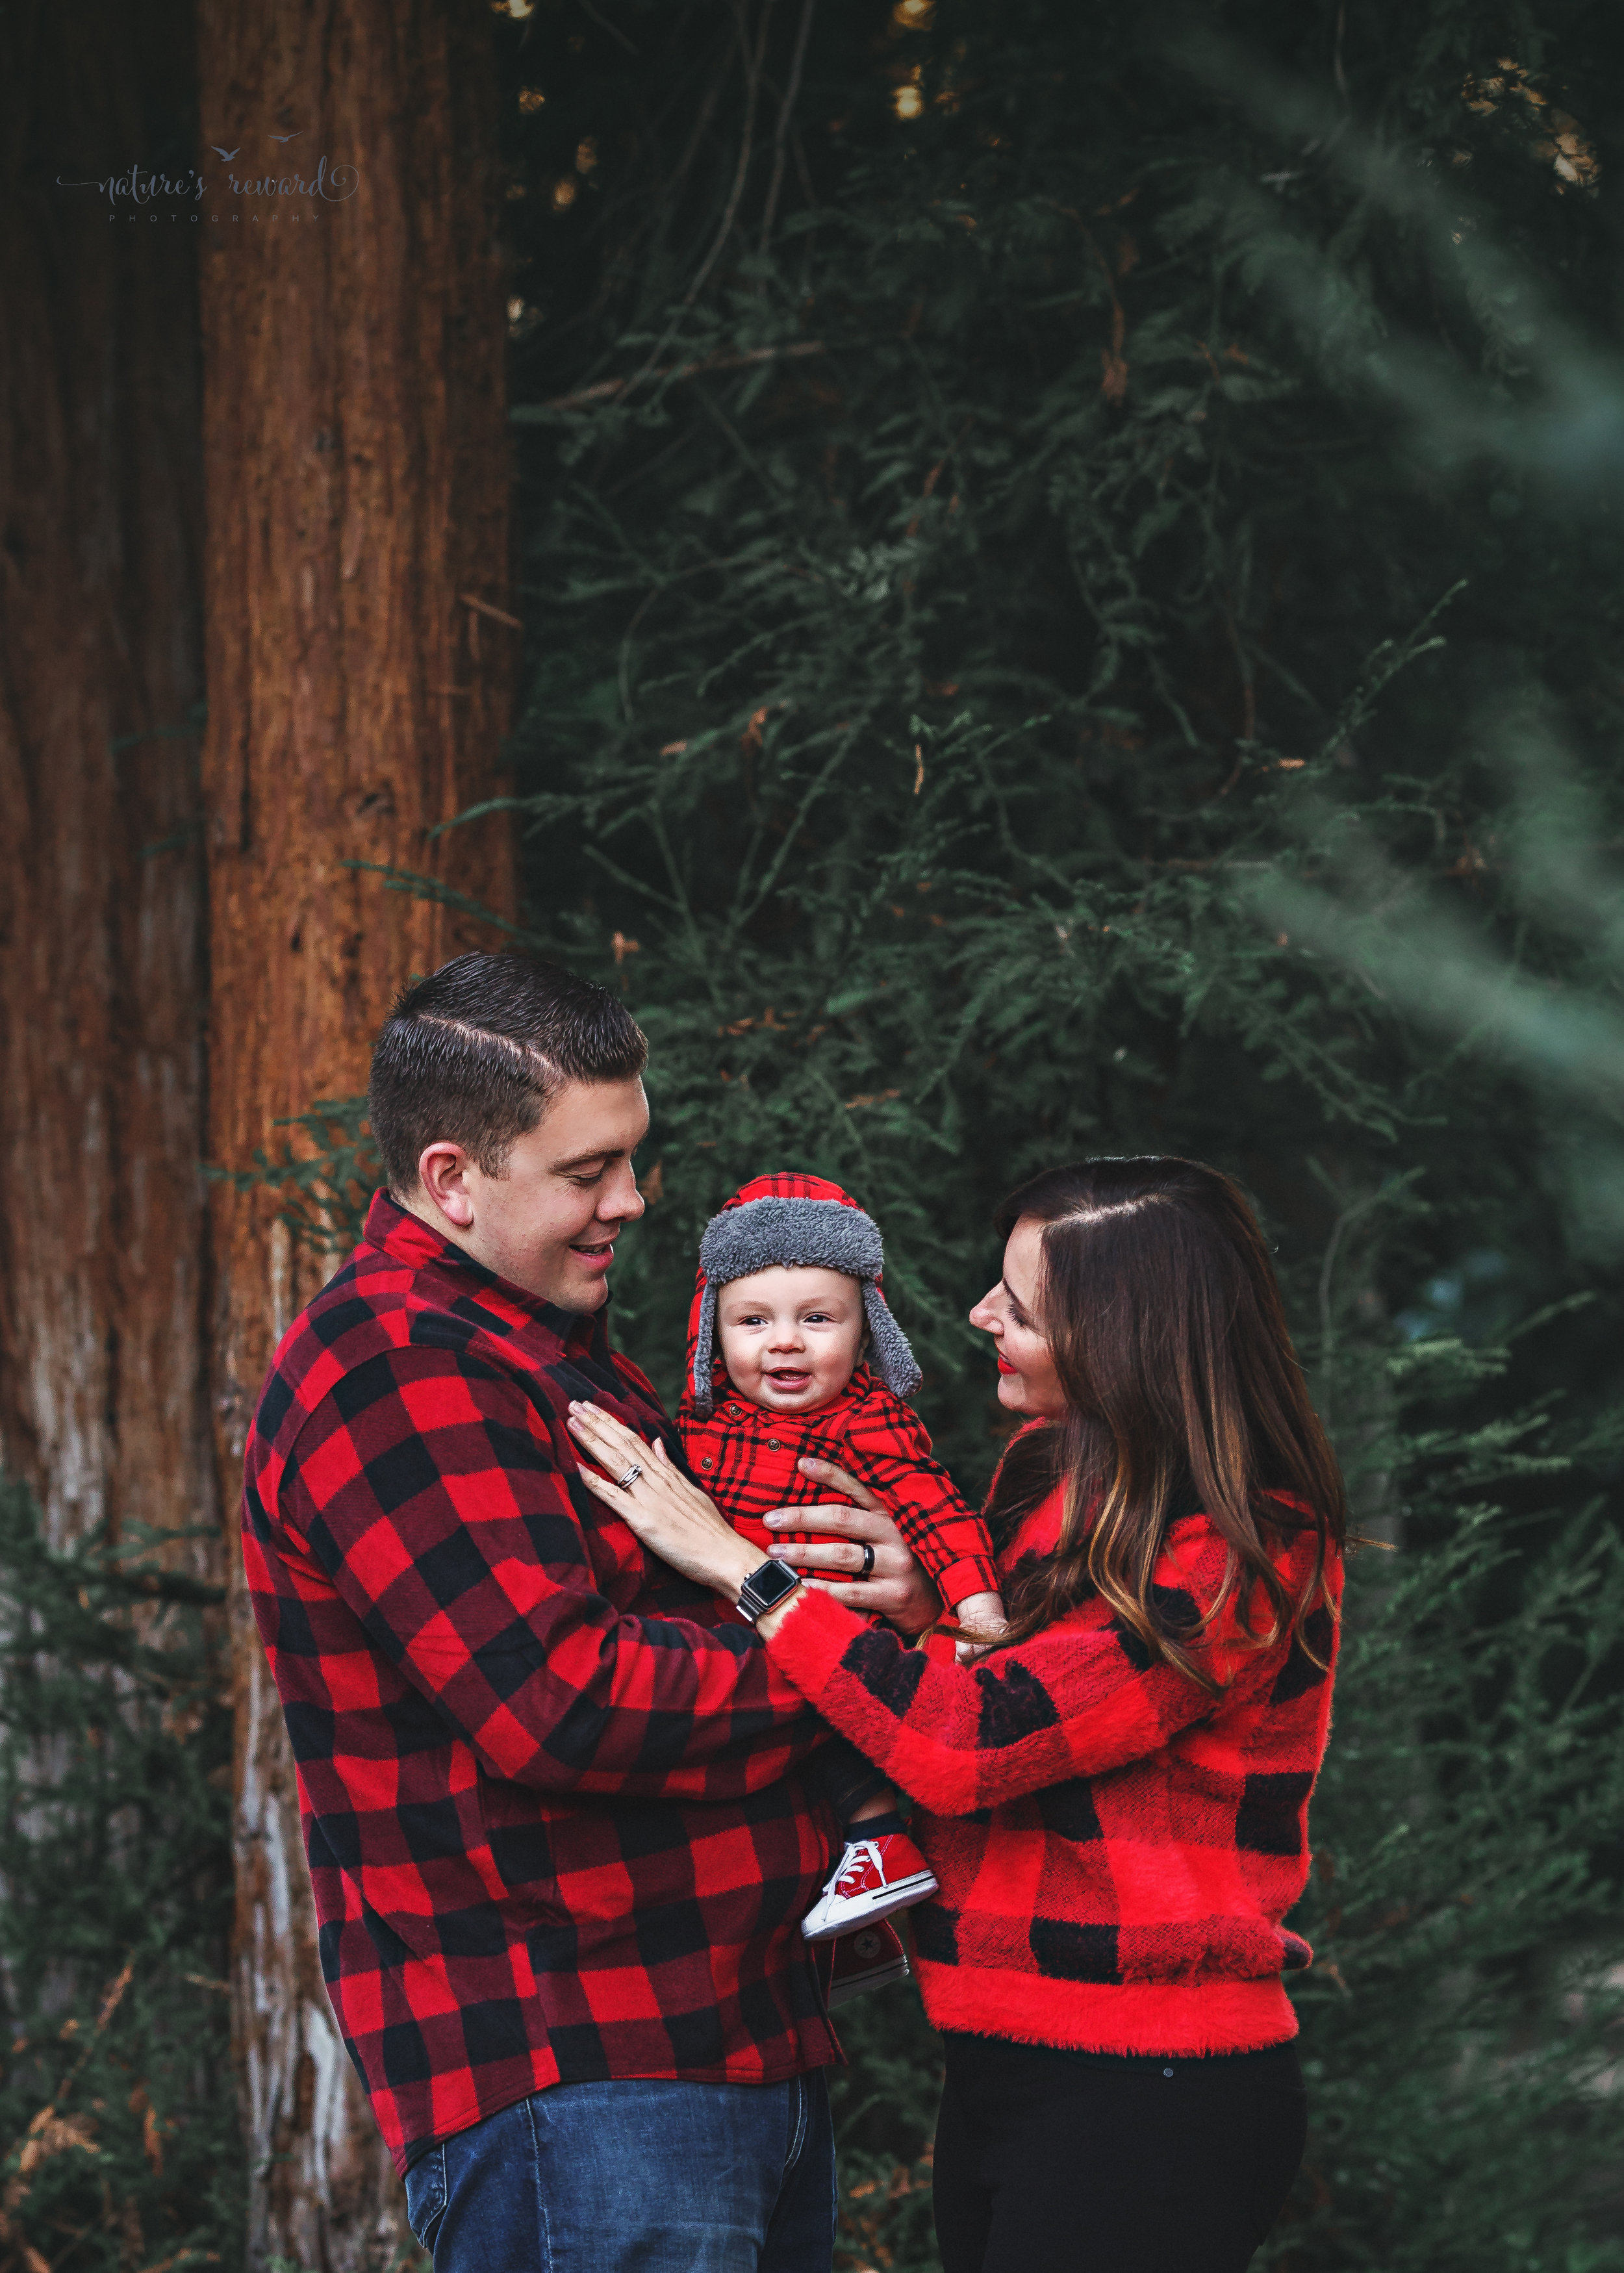 6 month old baby boy with his mommy and daddy in a lush green park setting in Redlands, Ca. by San Bernardino photographer- Nature's Reward Photography